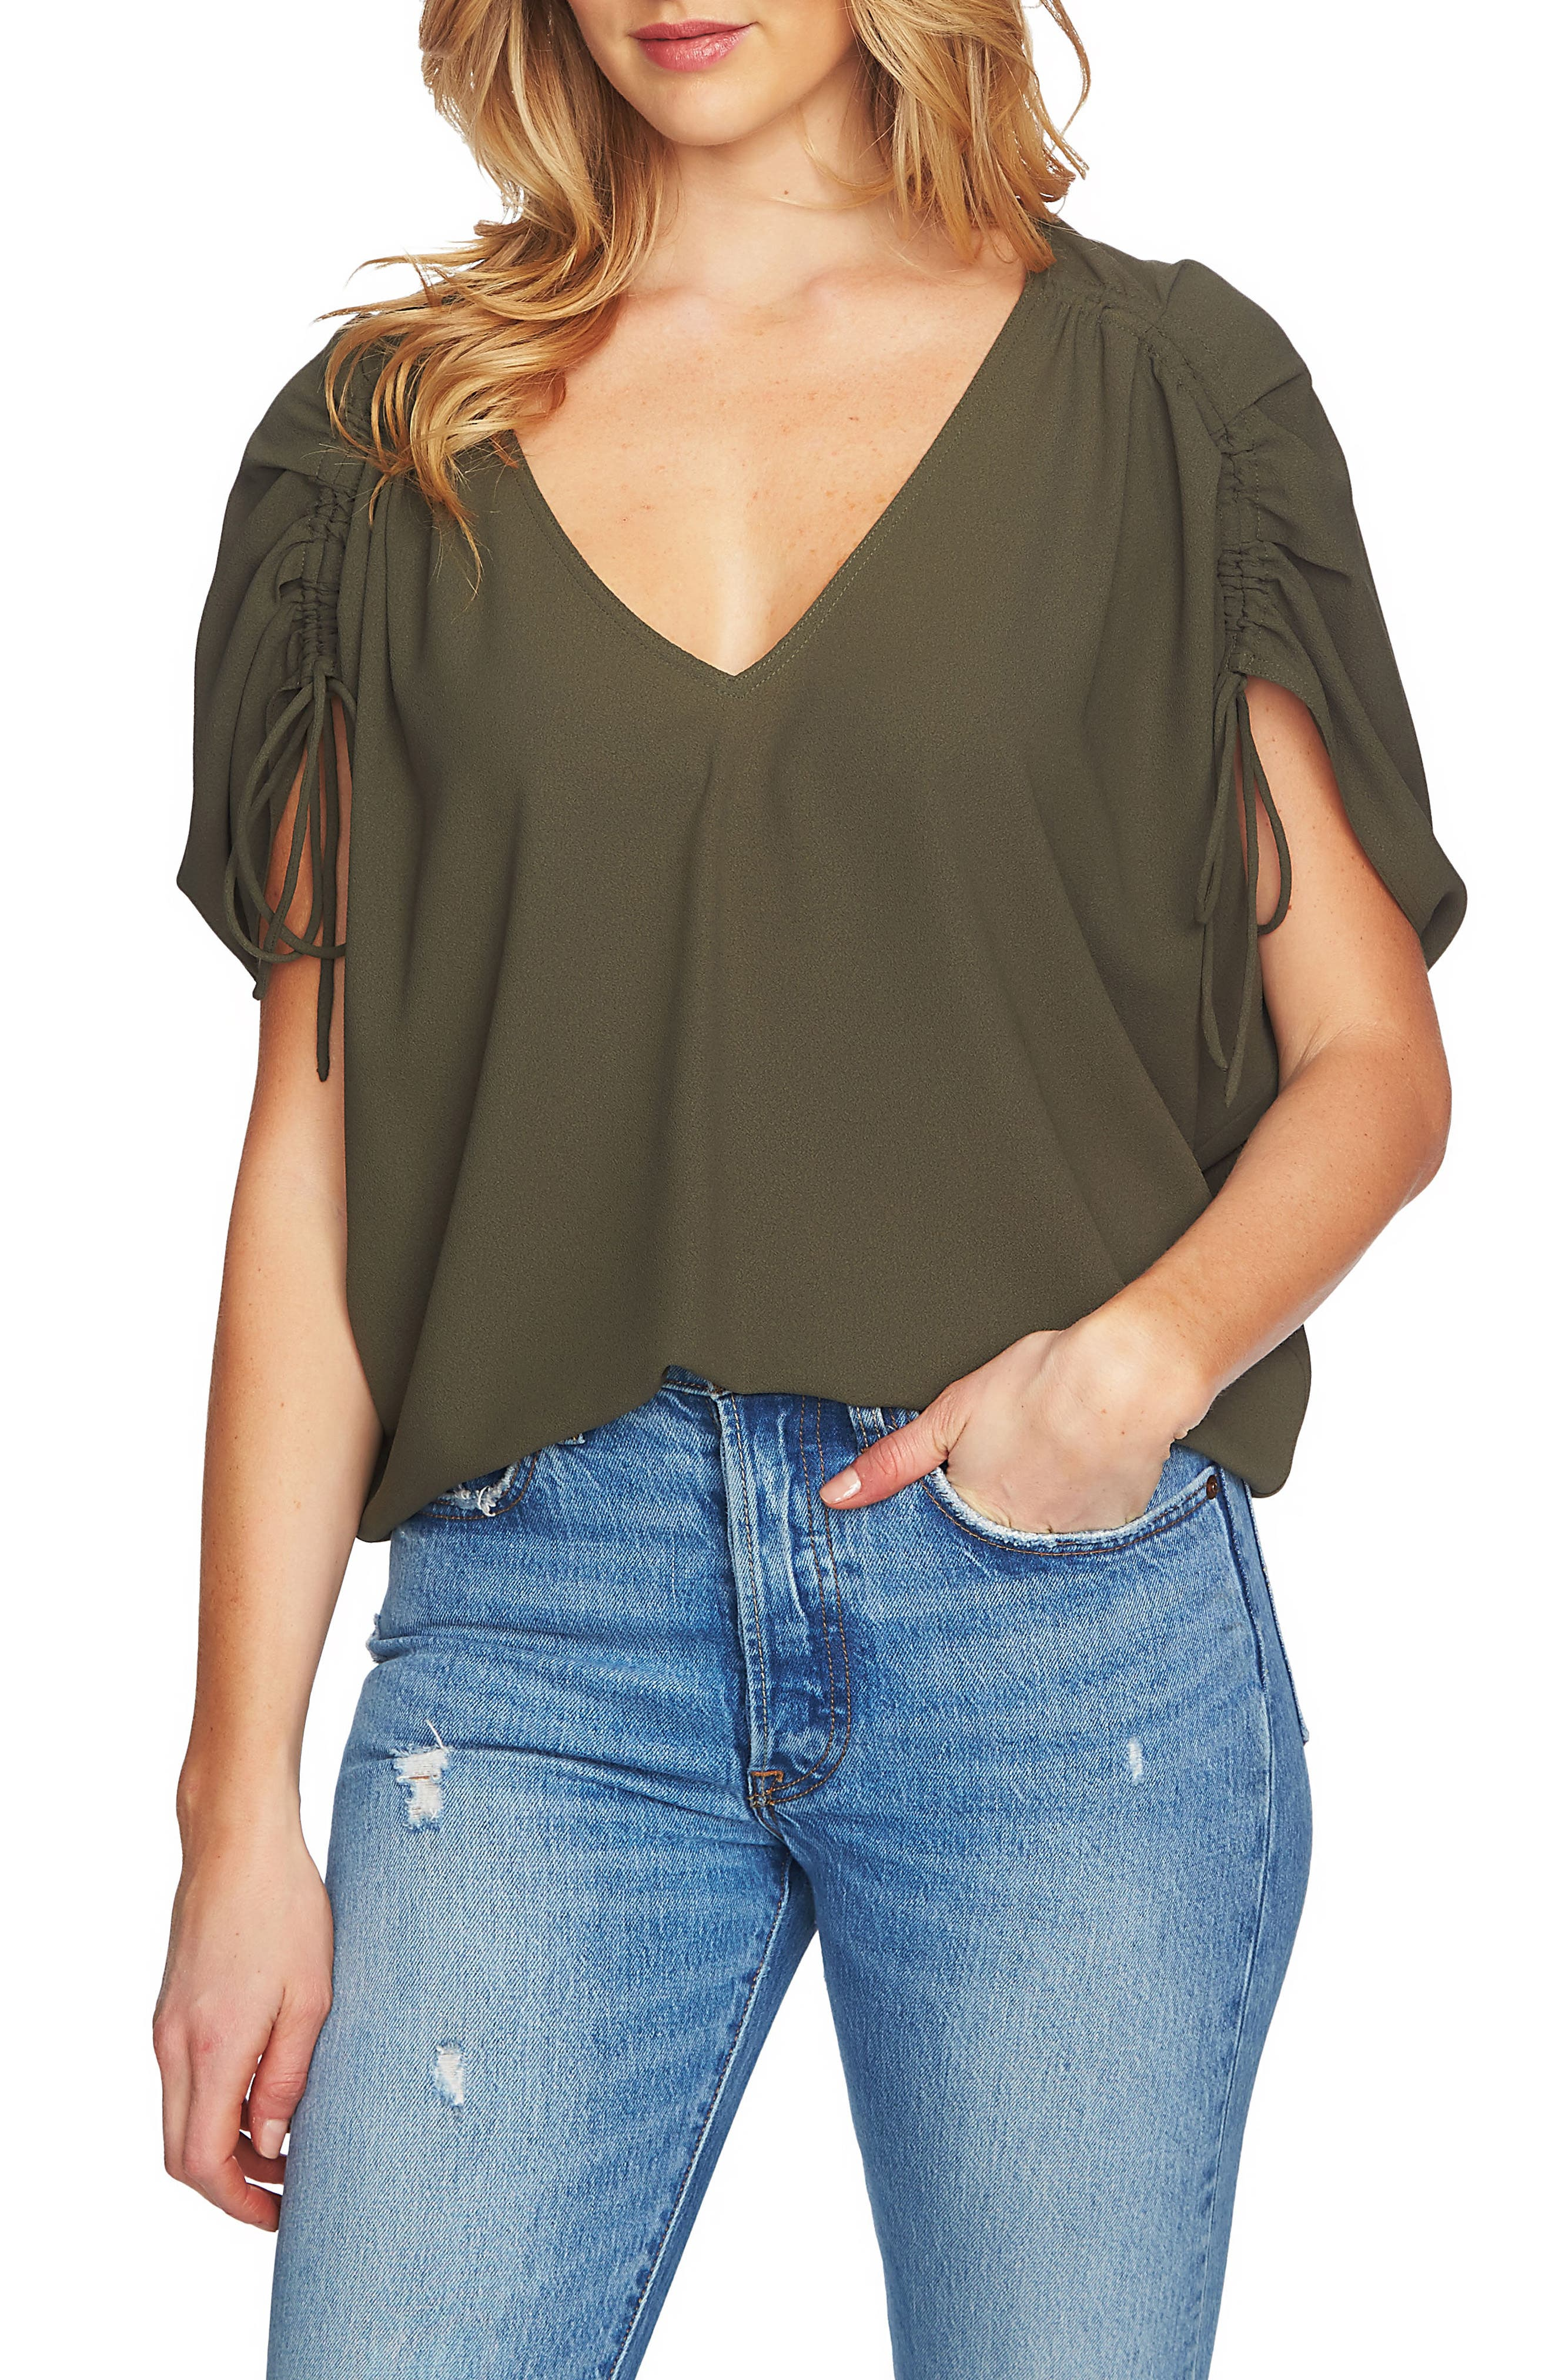 Cinch Sleeve Blouse,                             Main thumbnail 1, color,                             311-Olive Tree